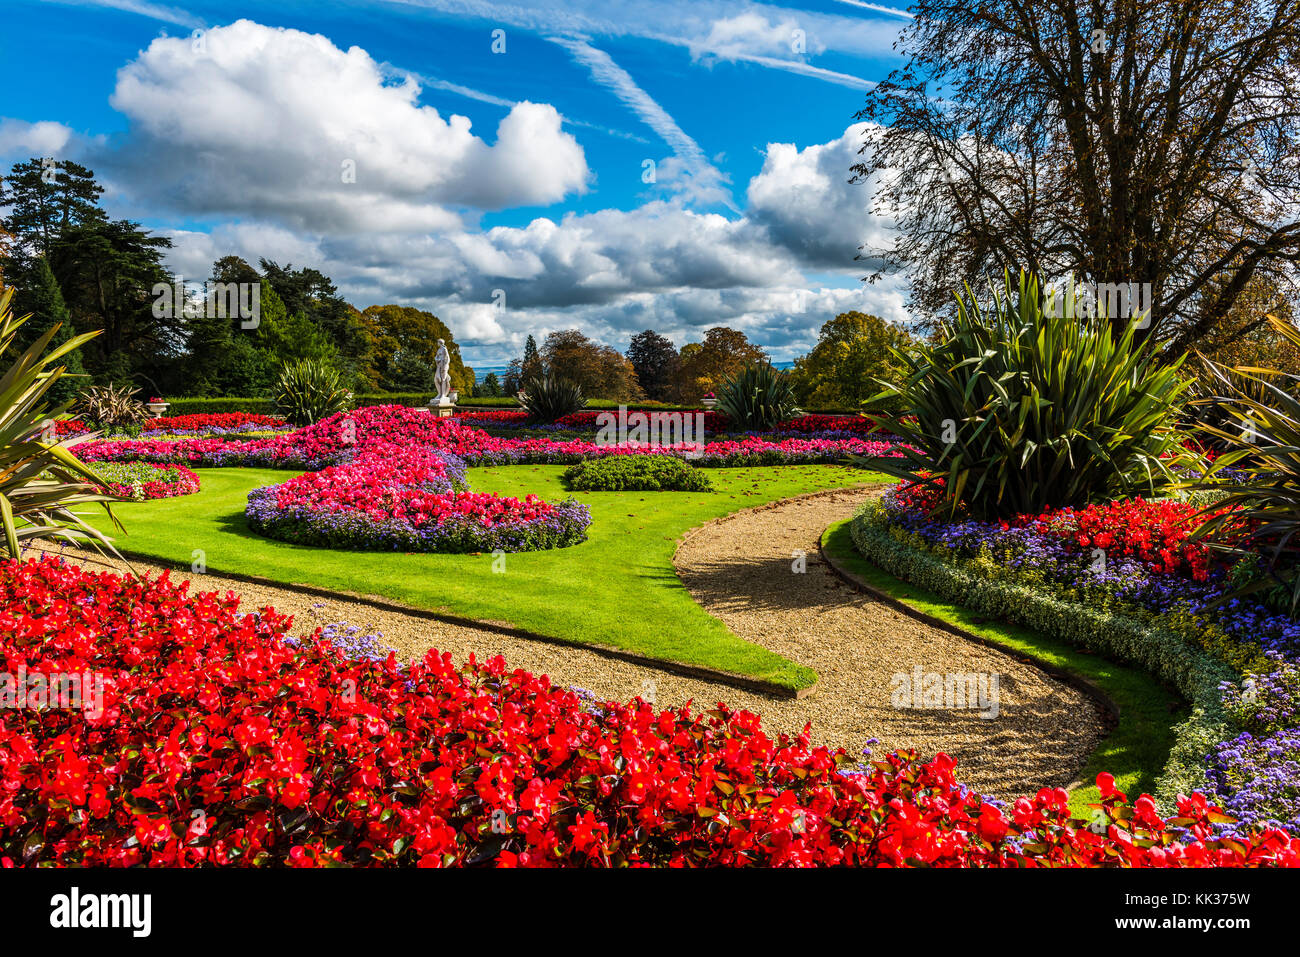 Parterre and gardens at Waddesdon Manor, Buckinghamshire, UK - Stock Image